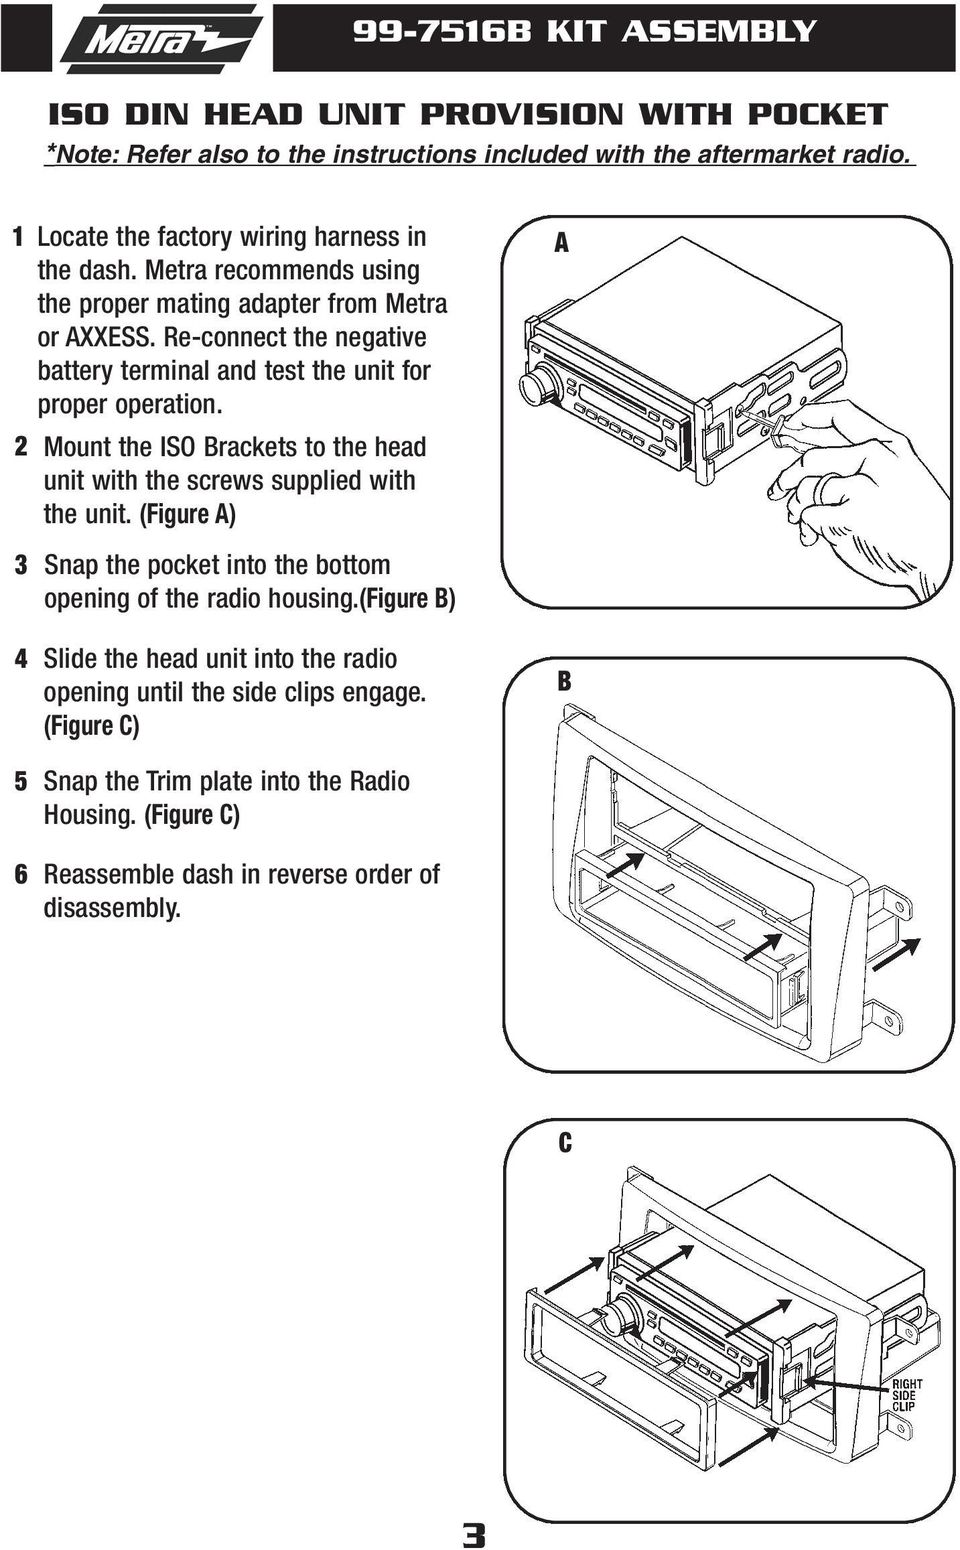 Installation Instructions For Part B Applications Mazda Cx Pdf Wiring Harness After Market Stereos Page 3 Re Connect The Negative Battery Terminal And Test Unit Proper Operation 2